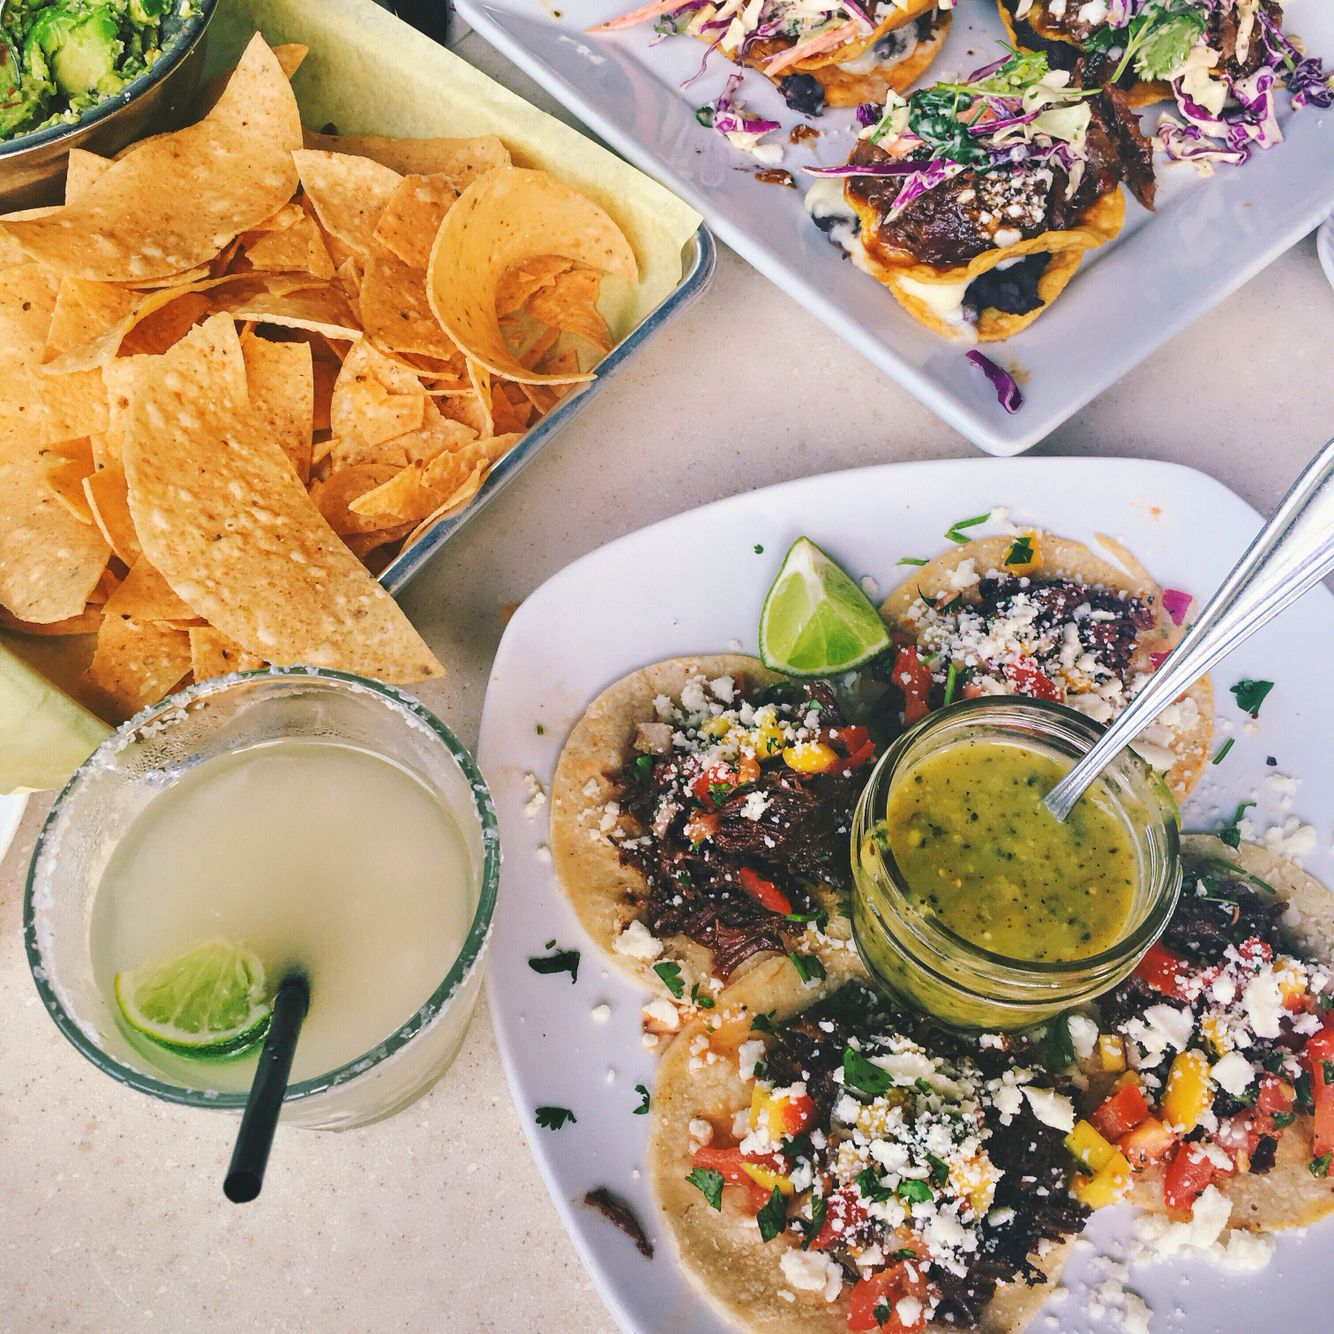 Tex- mex   Austin city guide things to do, eat and see in the great state of TX!